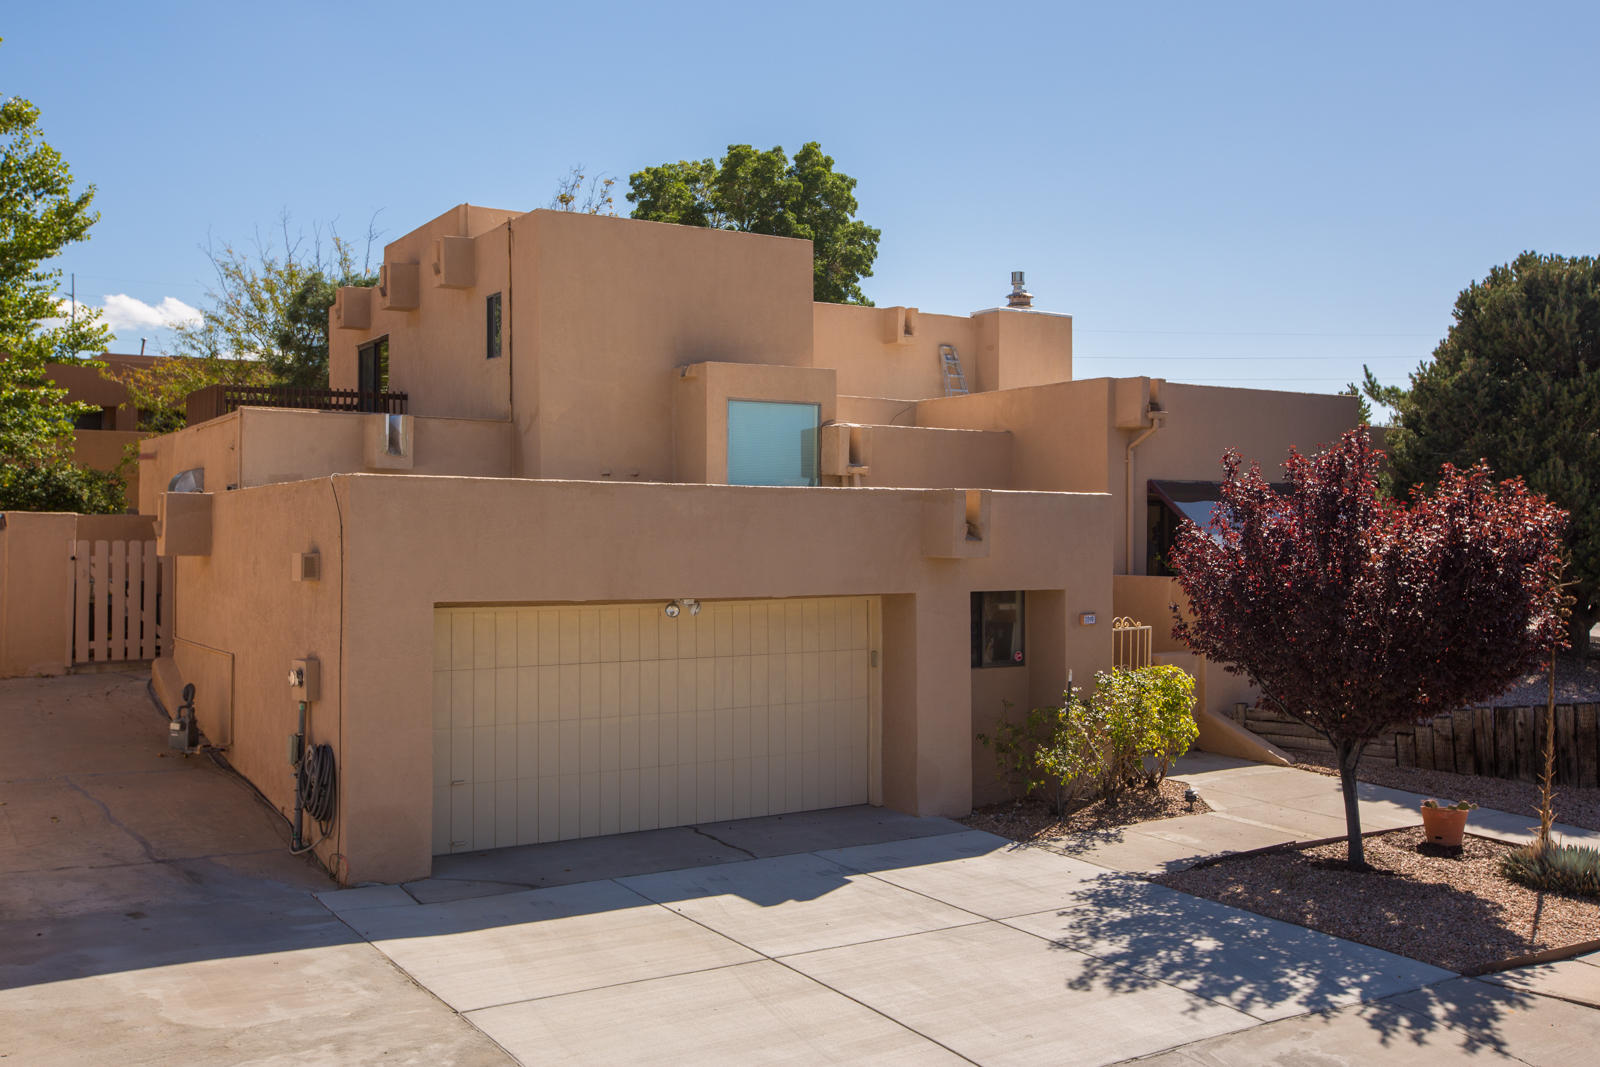 2000 MONTE LARGO DRIVE NE, ALBUQUERQUE, NM 87112